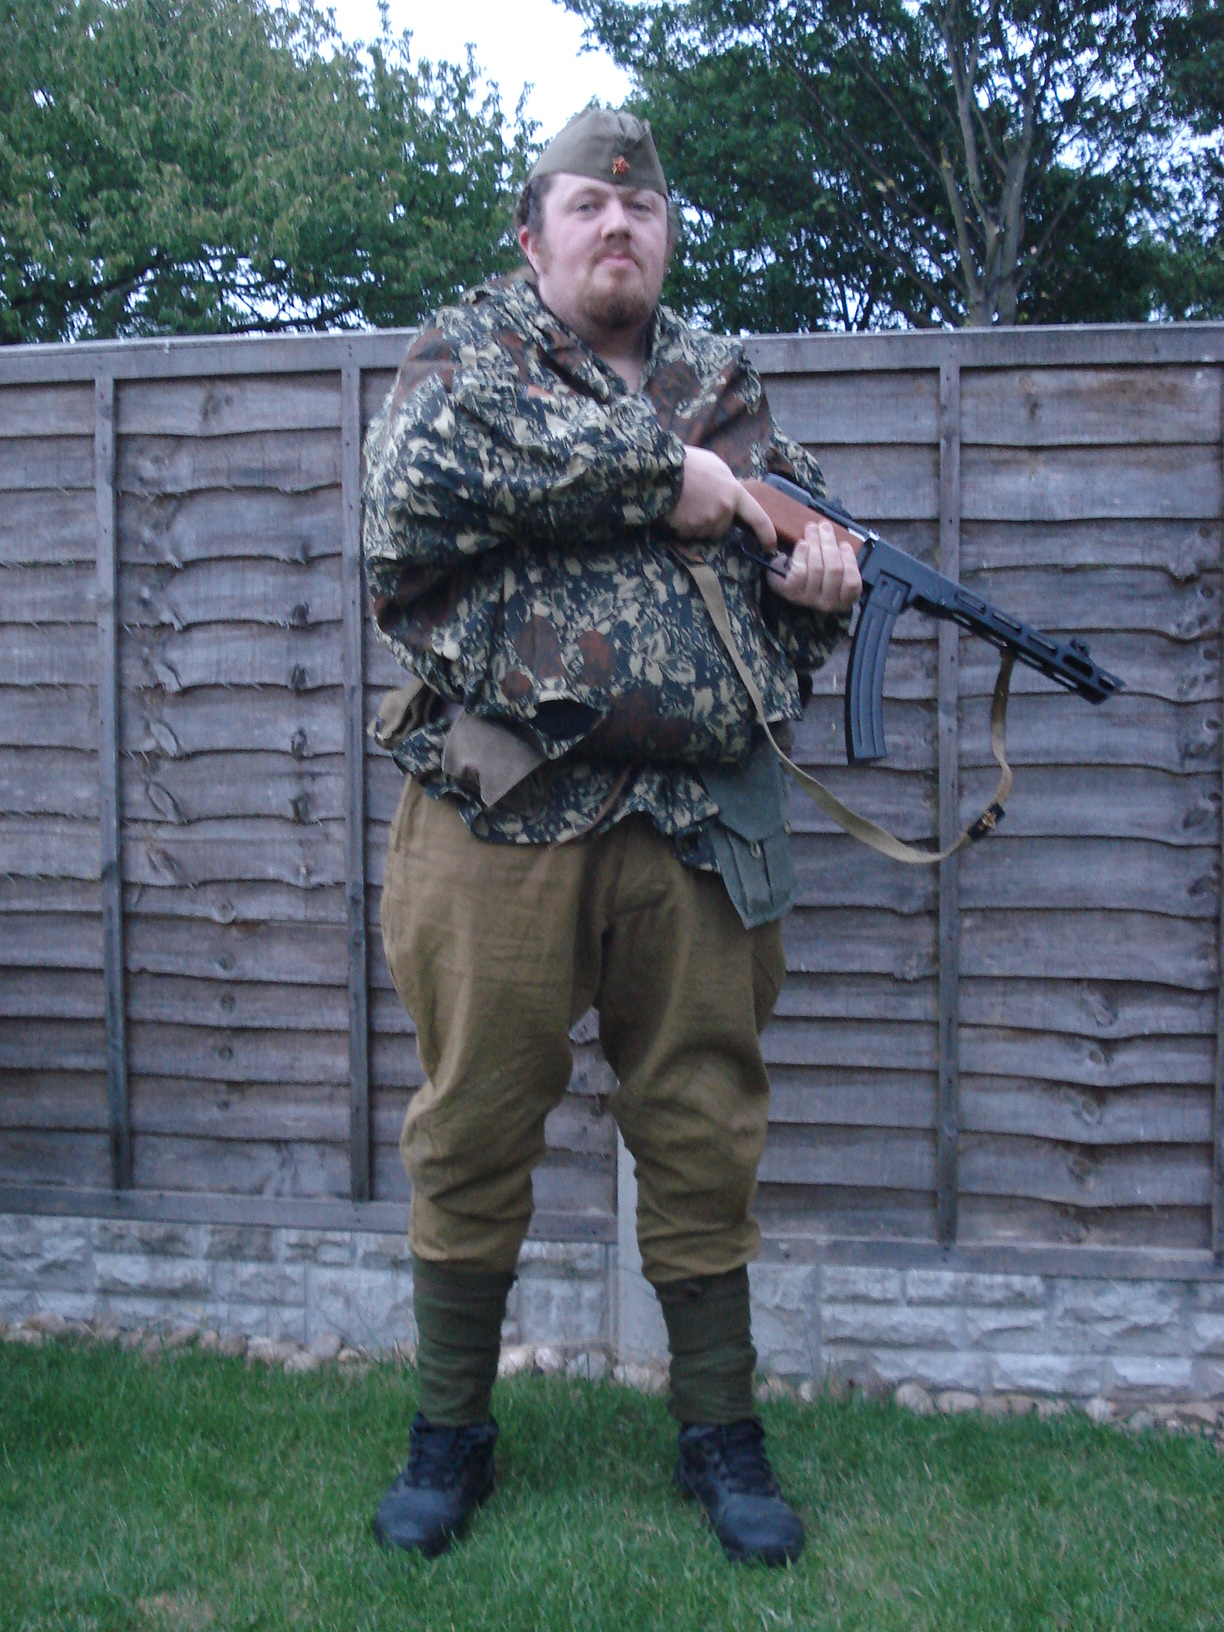 Ww2 Uniform For The Larger Gent Ww2 Airsoft Uk